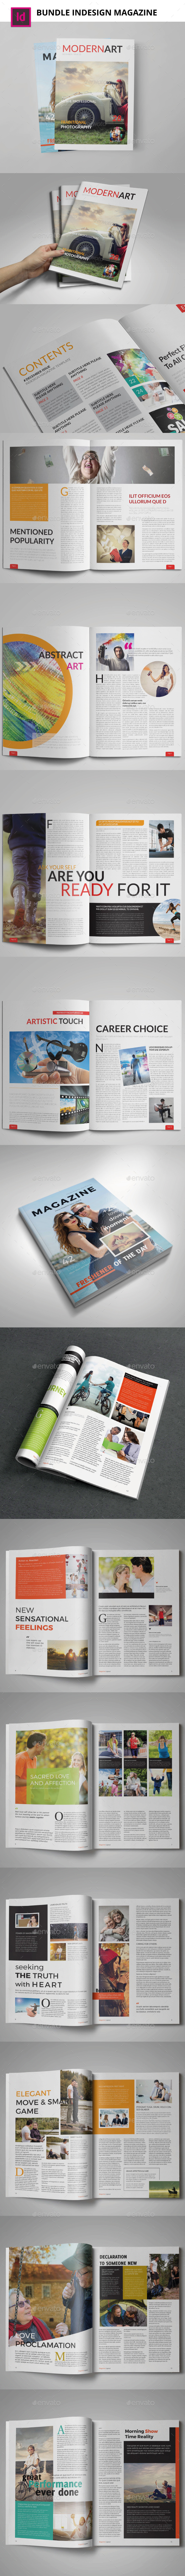 Bundle 5th Magazine Templates - Magazines Print Templates